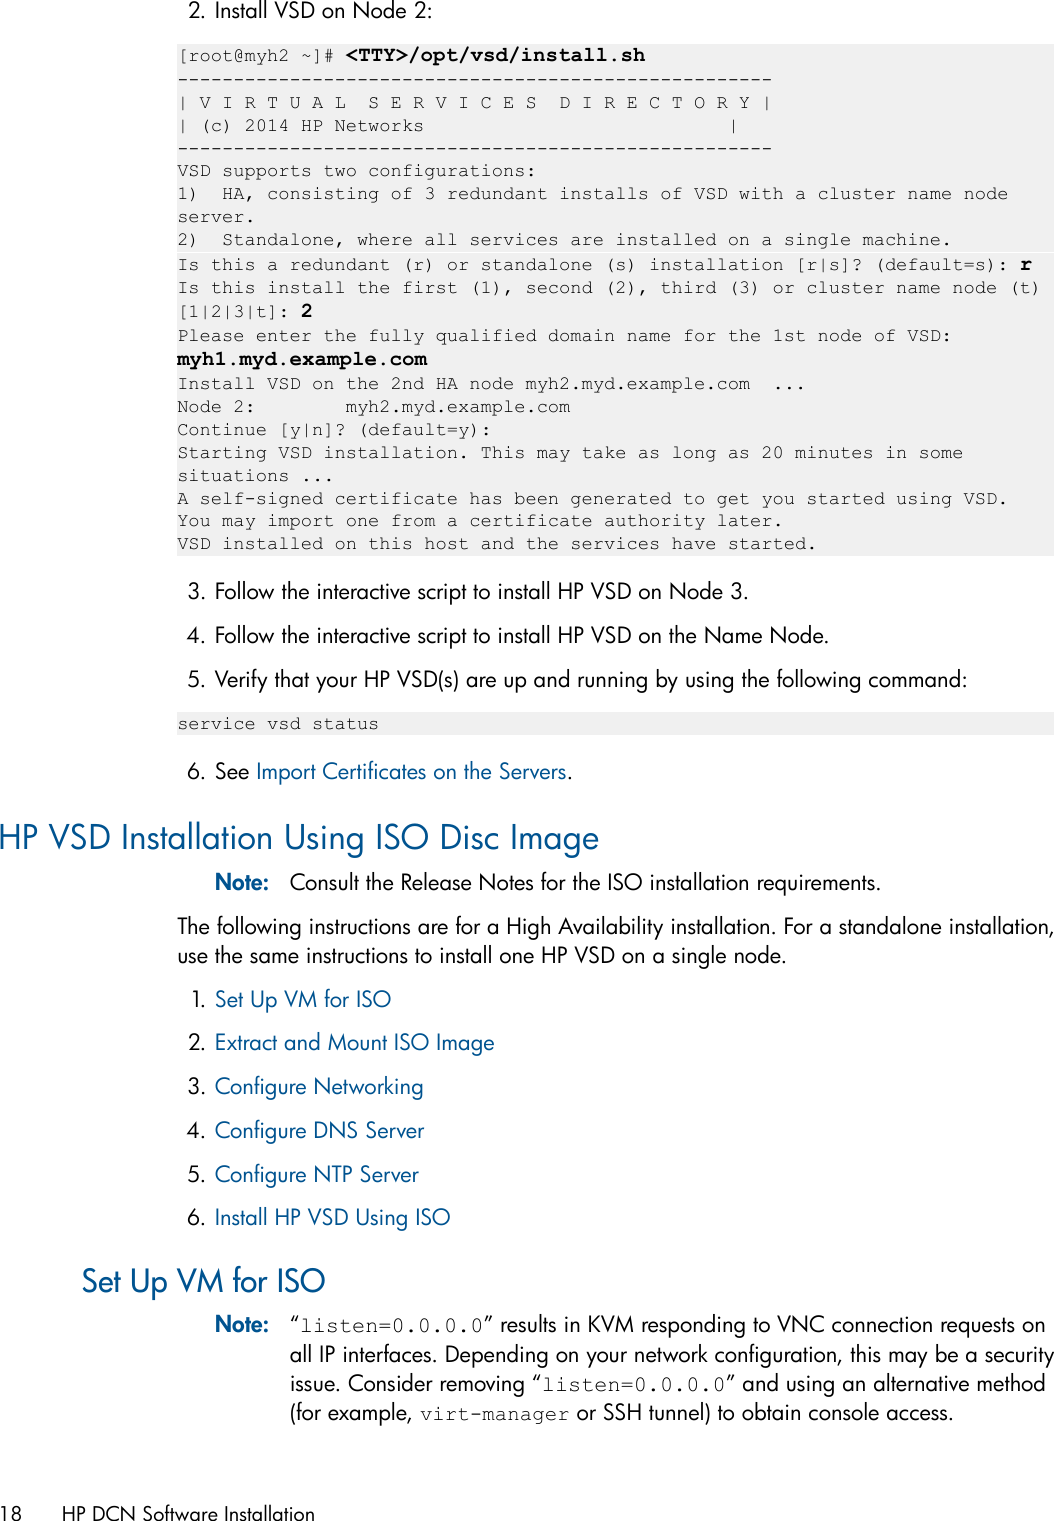 Hp Distributed Cloud Networking Installation Guide VSP_Install